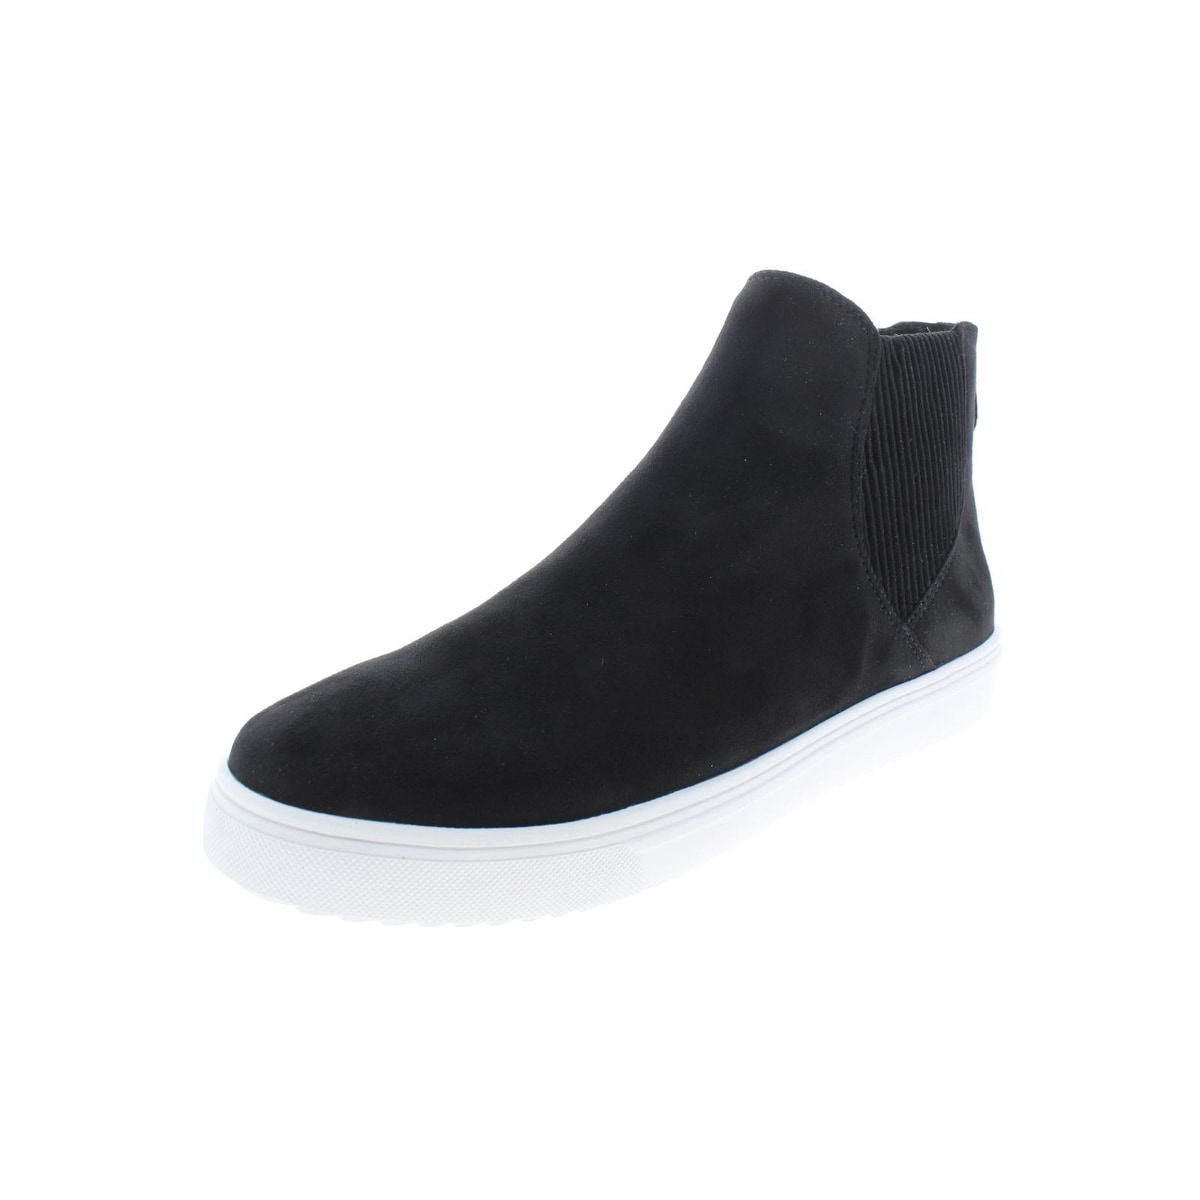 29b8ca20e247 Shop Steven By Steve Madden Womens Coal Fashion Sneakers Faux Suede High Top  - Free Shipping Today - Overstock - 27103313